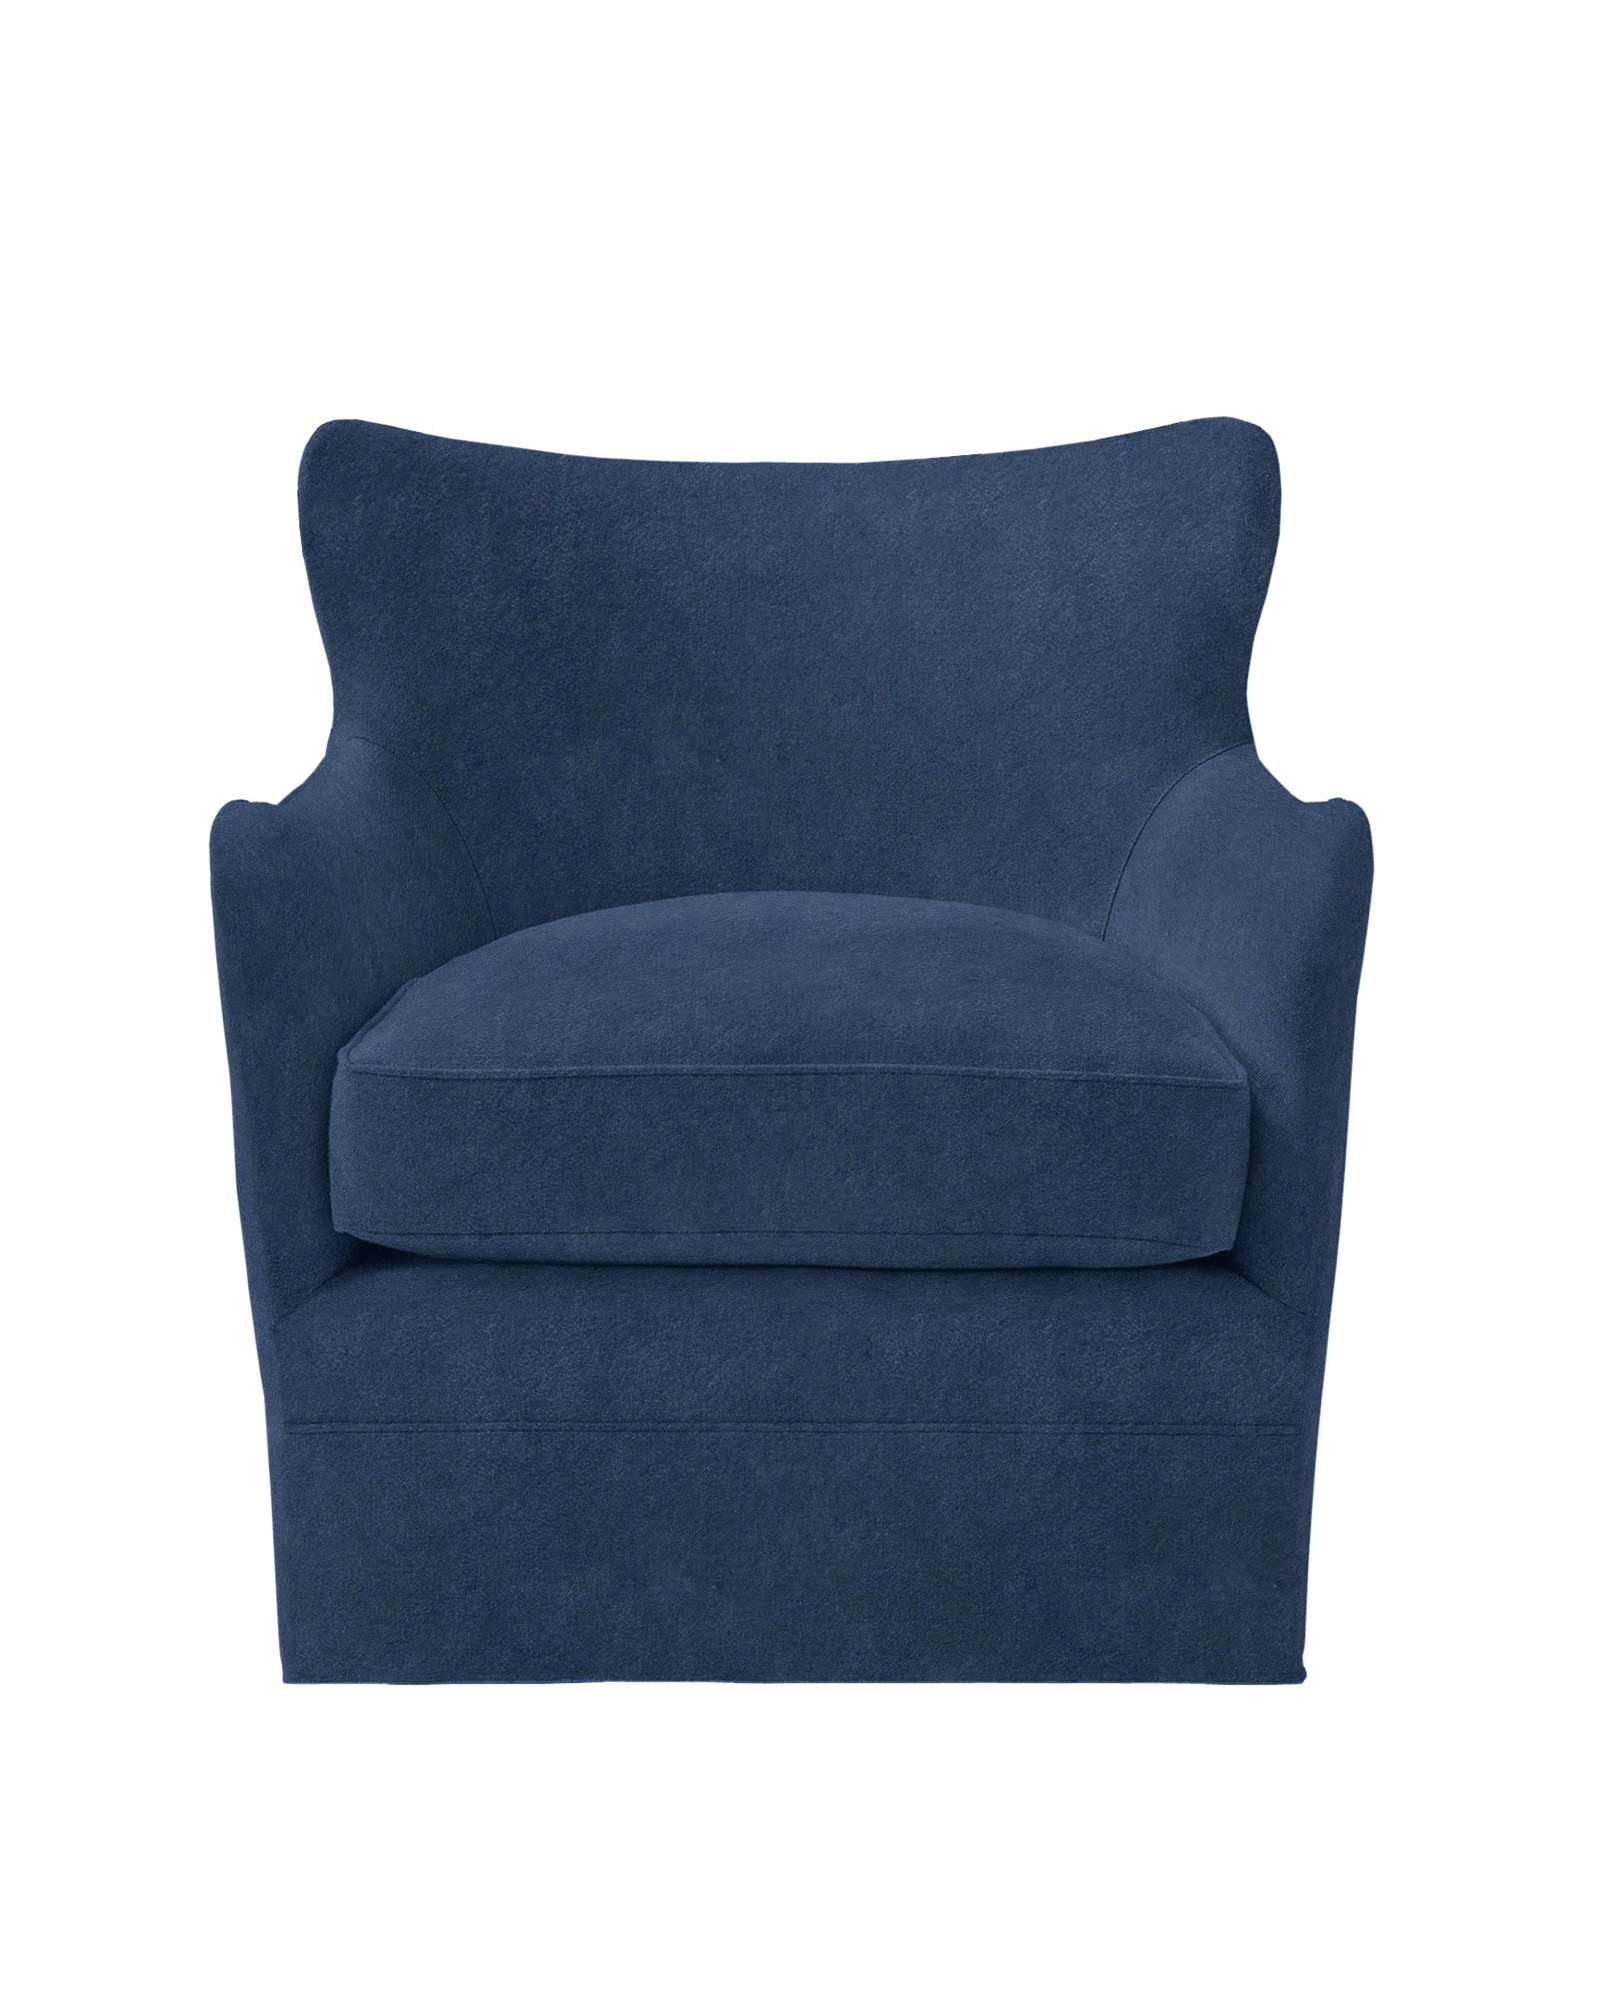 Elm Swivel Chair - Cottswald Leather Navy,